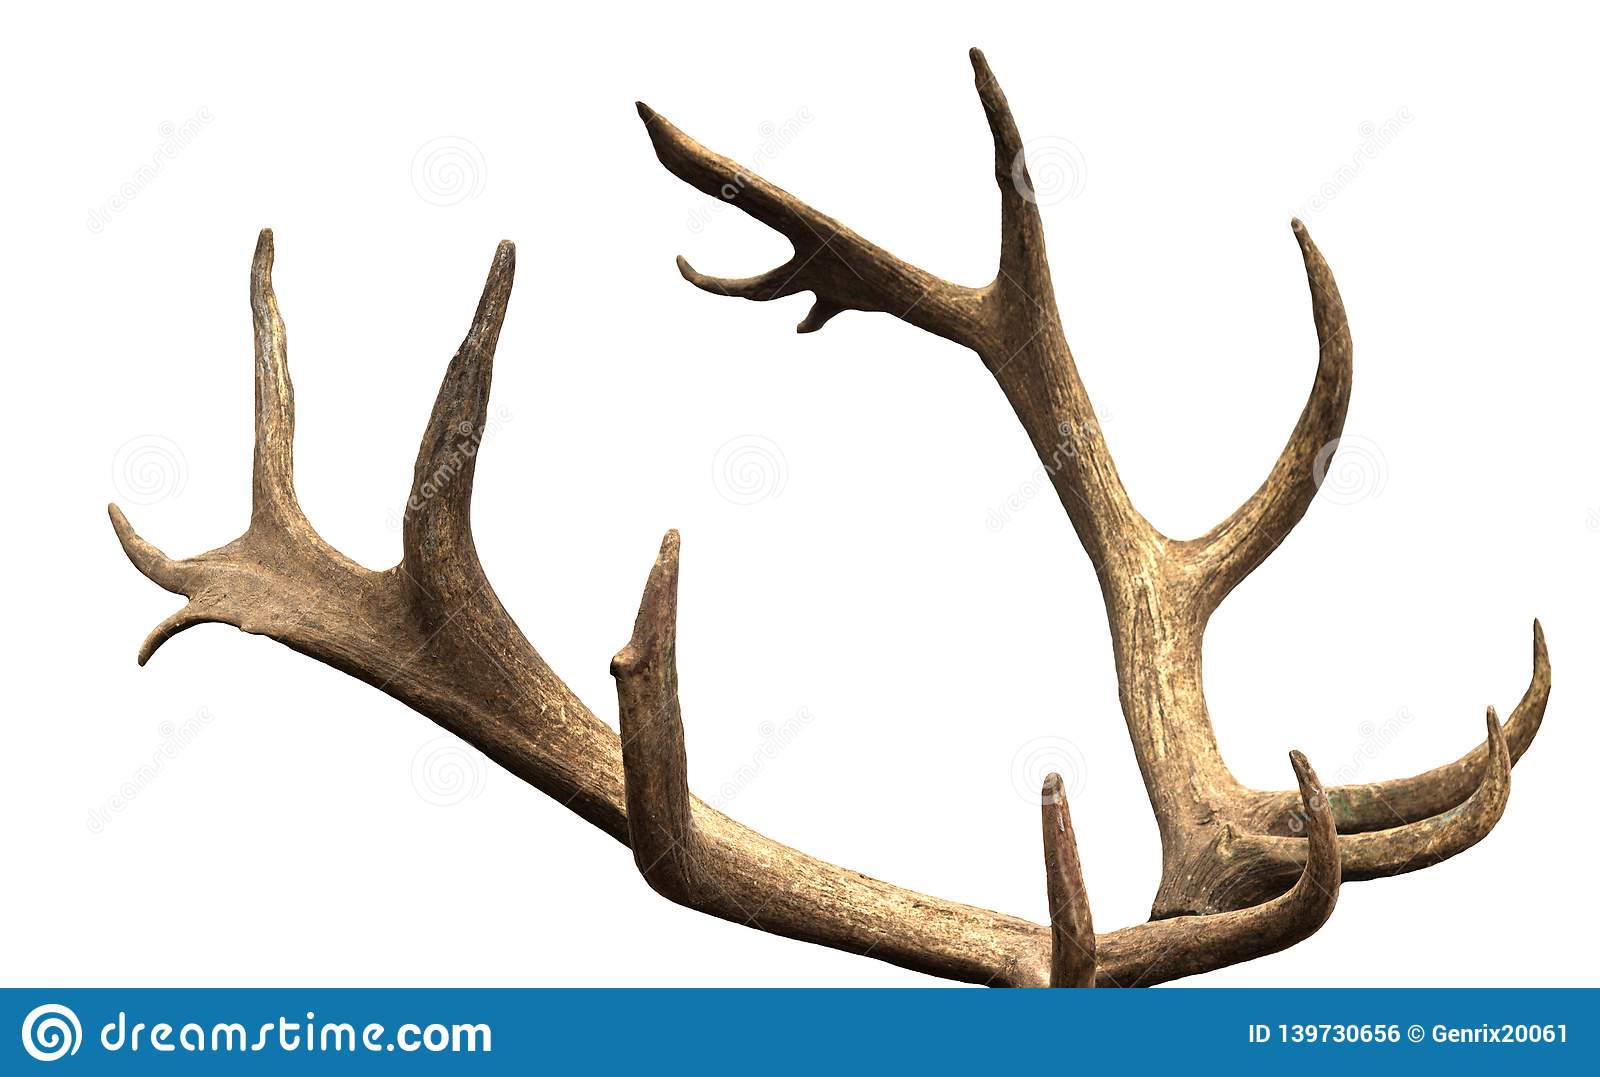 Large antler maral deer on a white background, isolate, horn